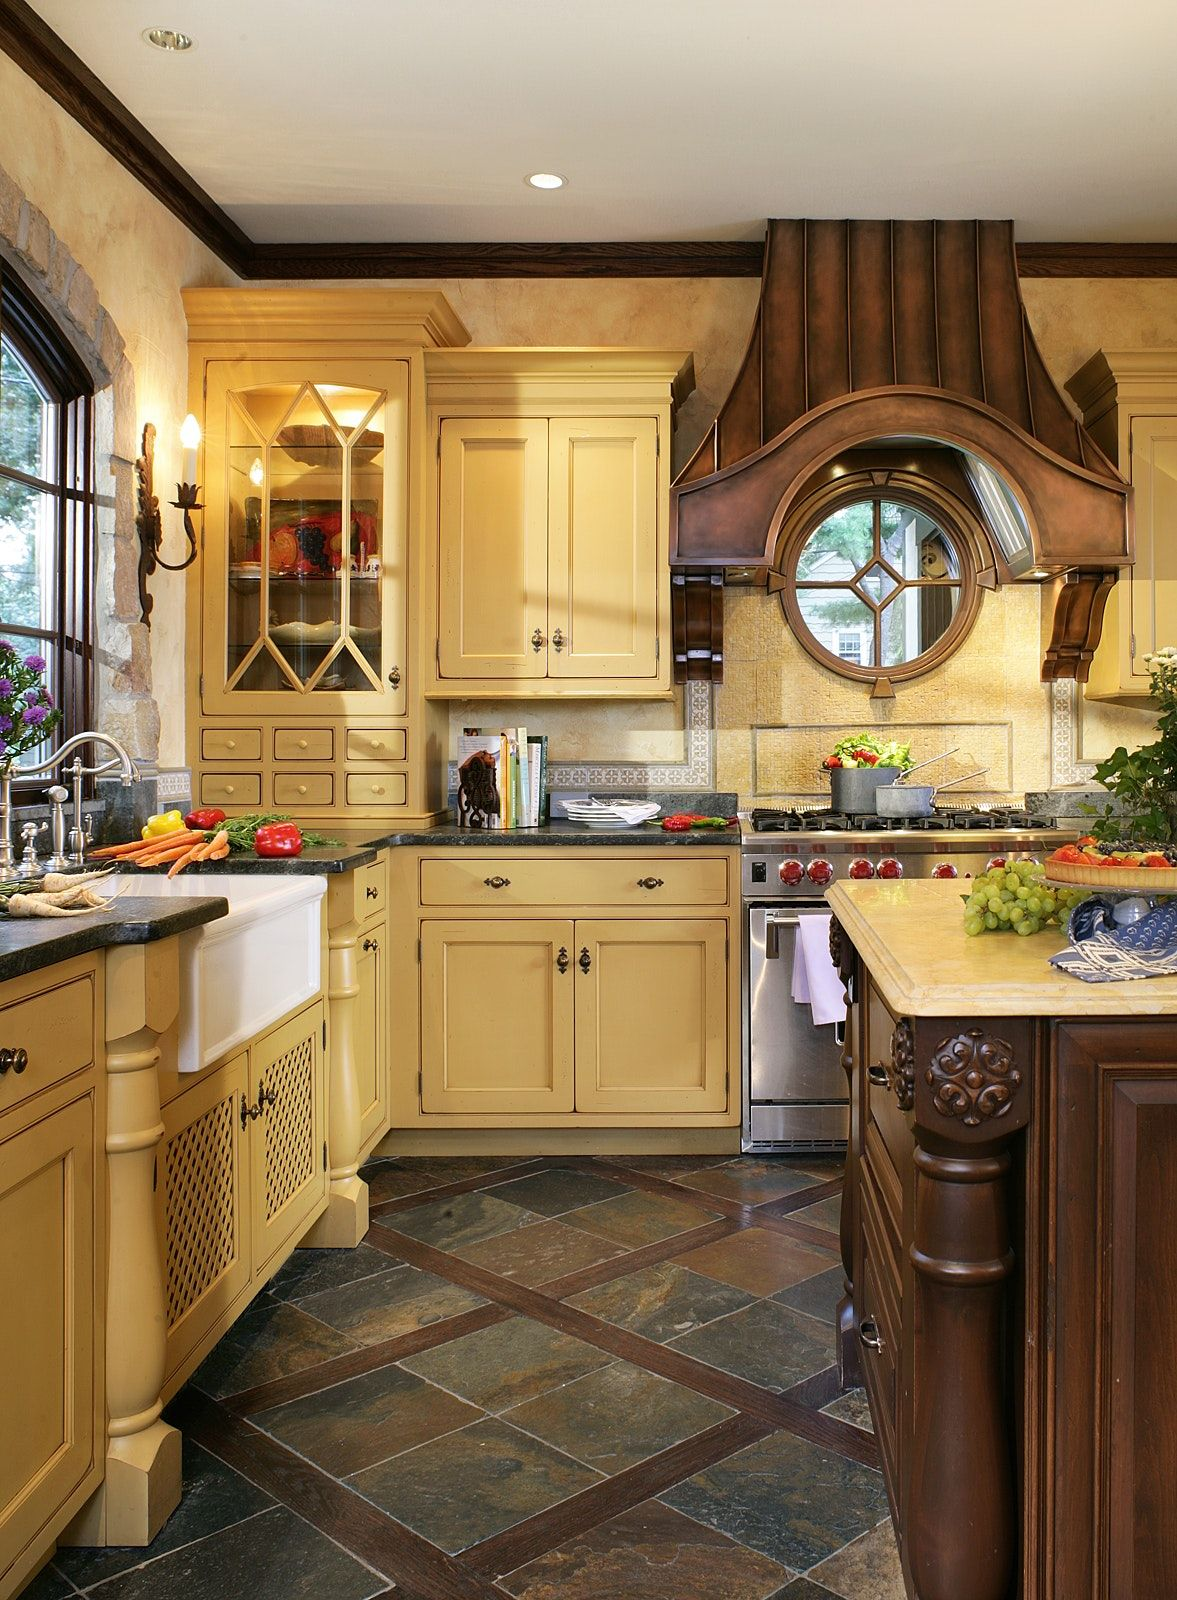 Custom Country Kitchen Timeless French Country Kitchen With Old World Ambiance Featuring